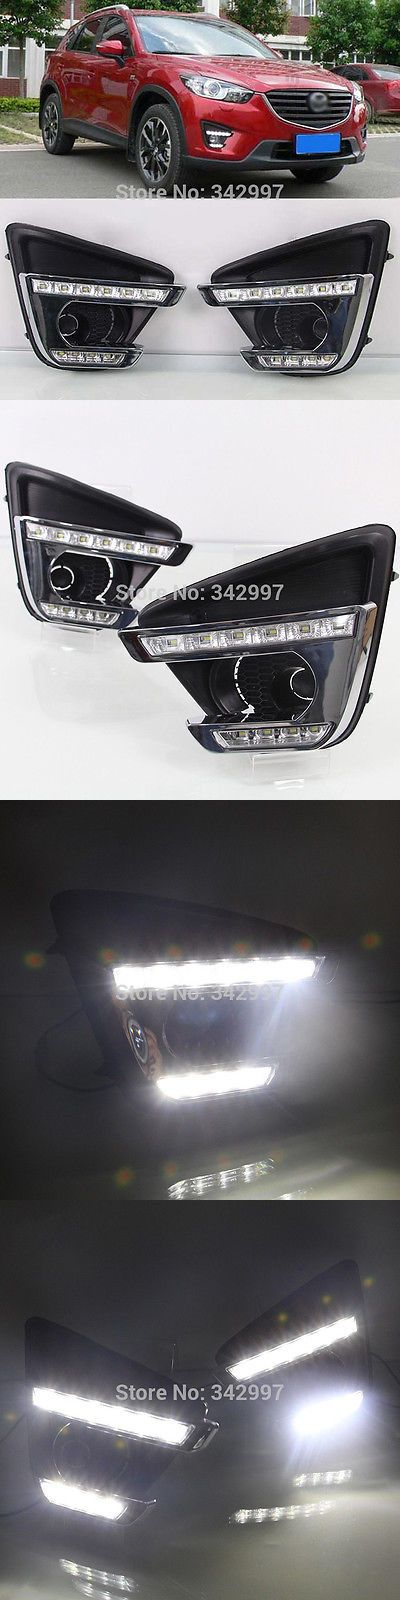 Motors Parts And Accessories: Exact Fit Mazda Cx-5 2015-2017 2X White Led Daytime Day Fog Lights Drl Run Lamp -> BUY IT NOW ONLY: $103.99 on eBay!